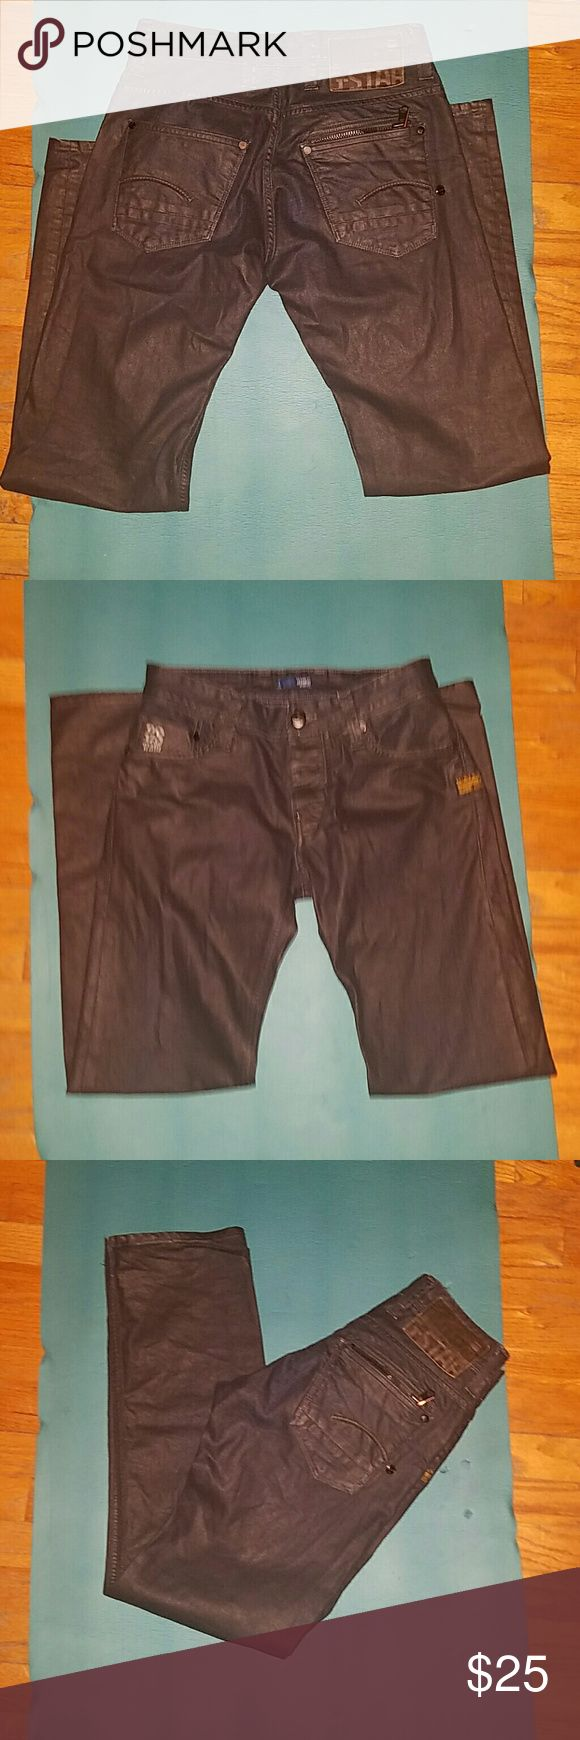 *SOLD Men Black G-Star Raw Jeans Sz 28/32 These are practically brand new worn once men's black G-Star Raw Jeans size 28/32 straight fit. G-Star Jeans Slim Straight